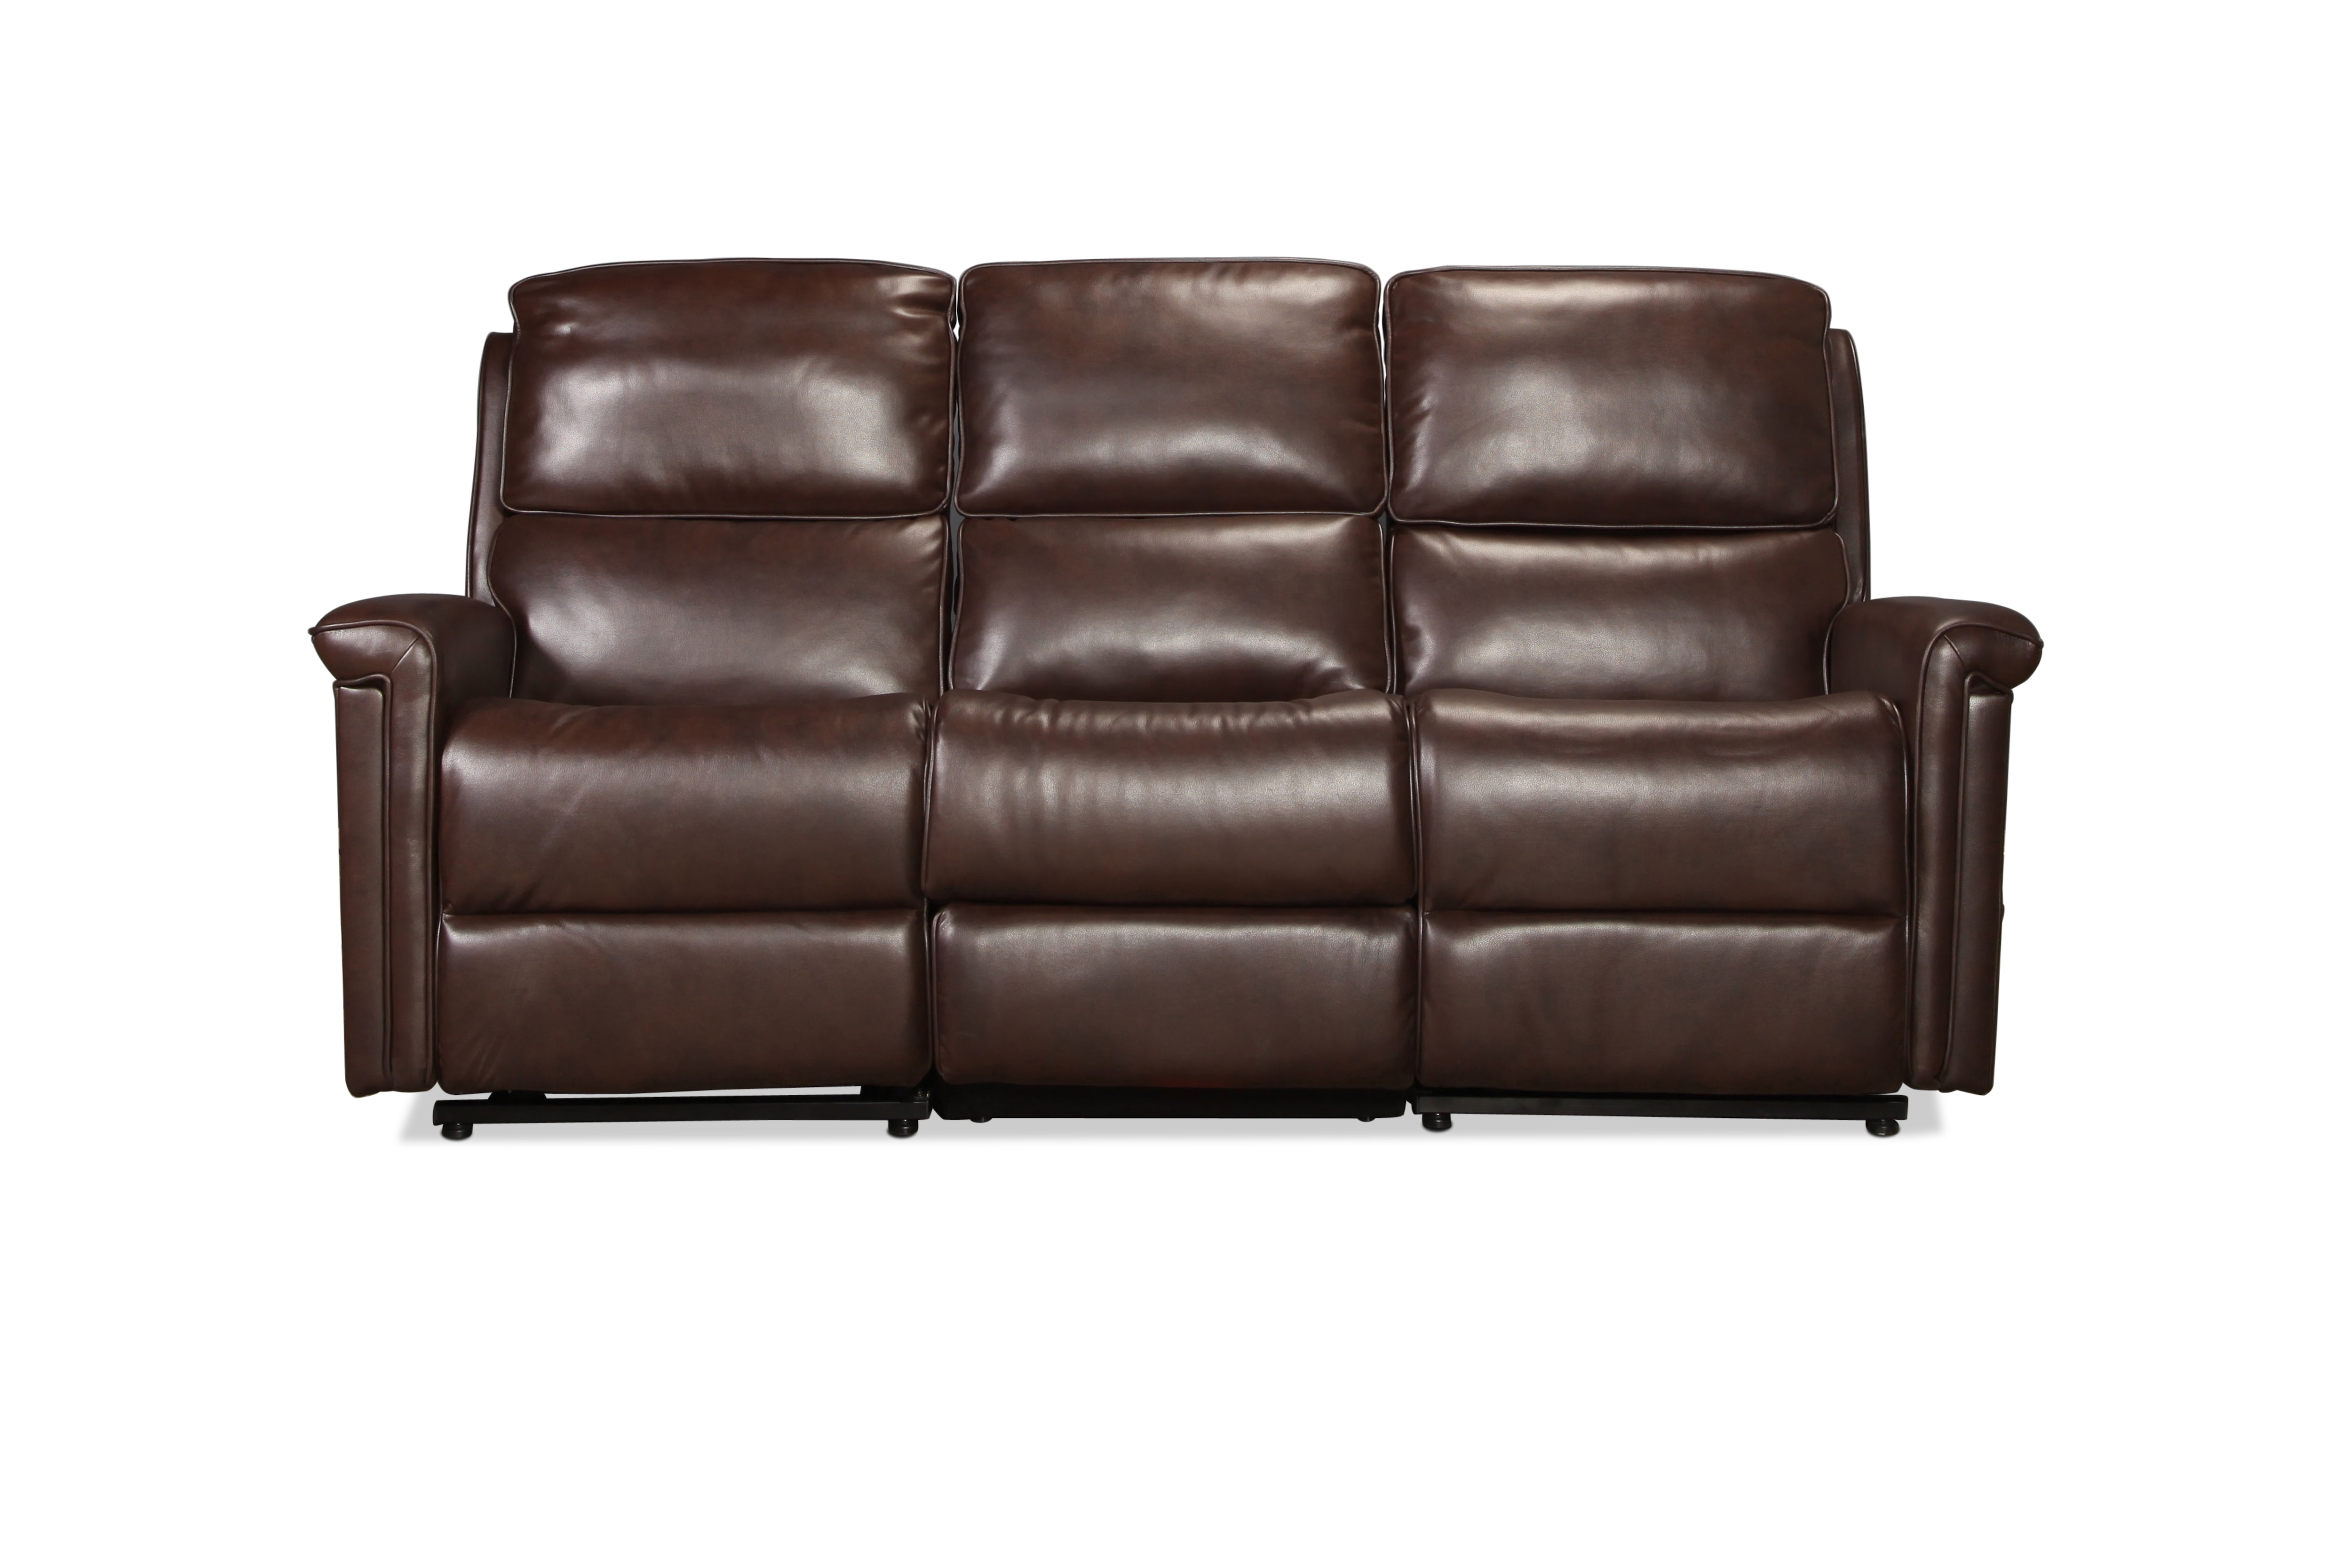 Calverton Power Lift Reclining Sofa - Brown